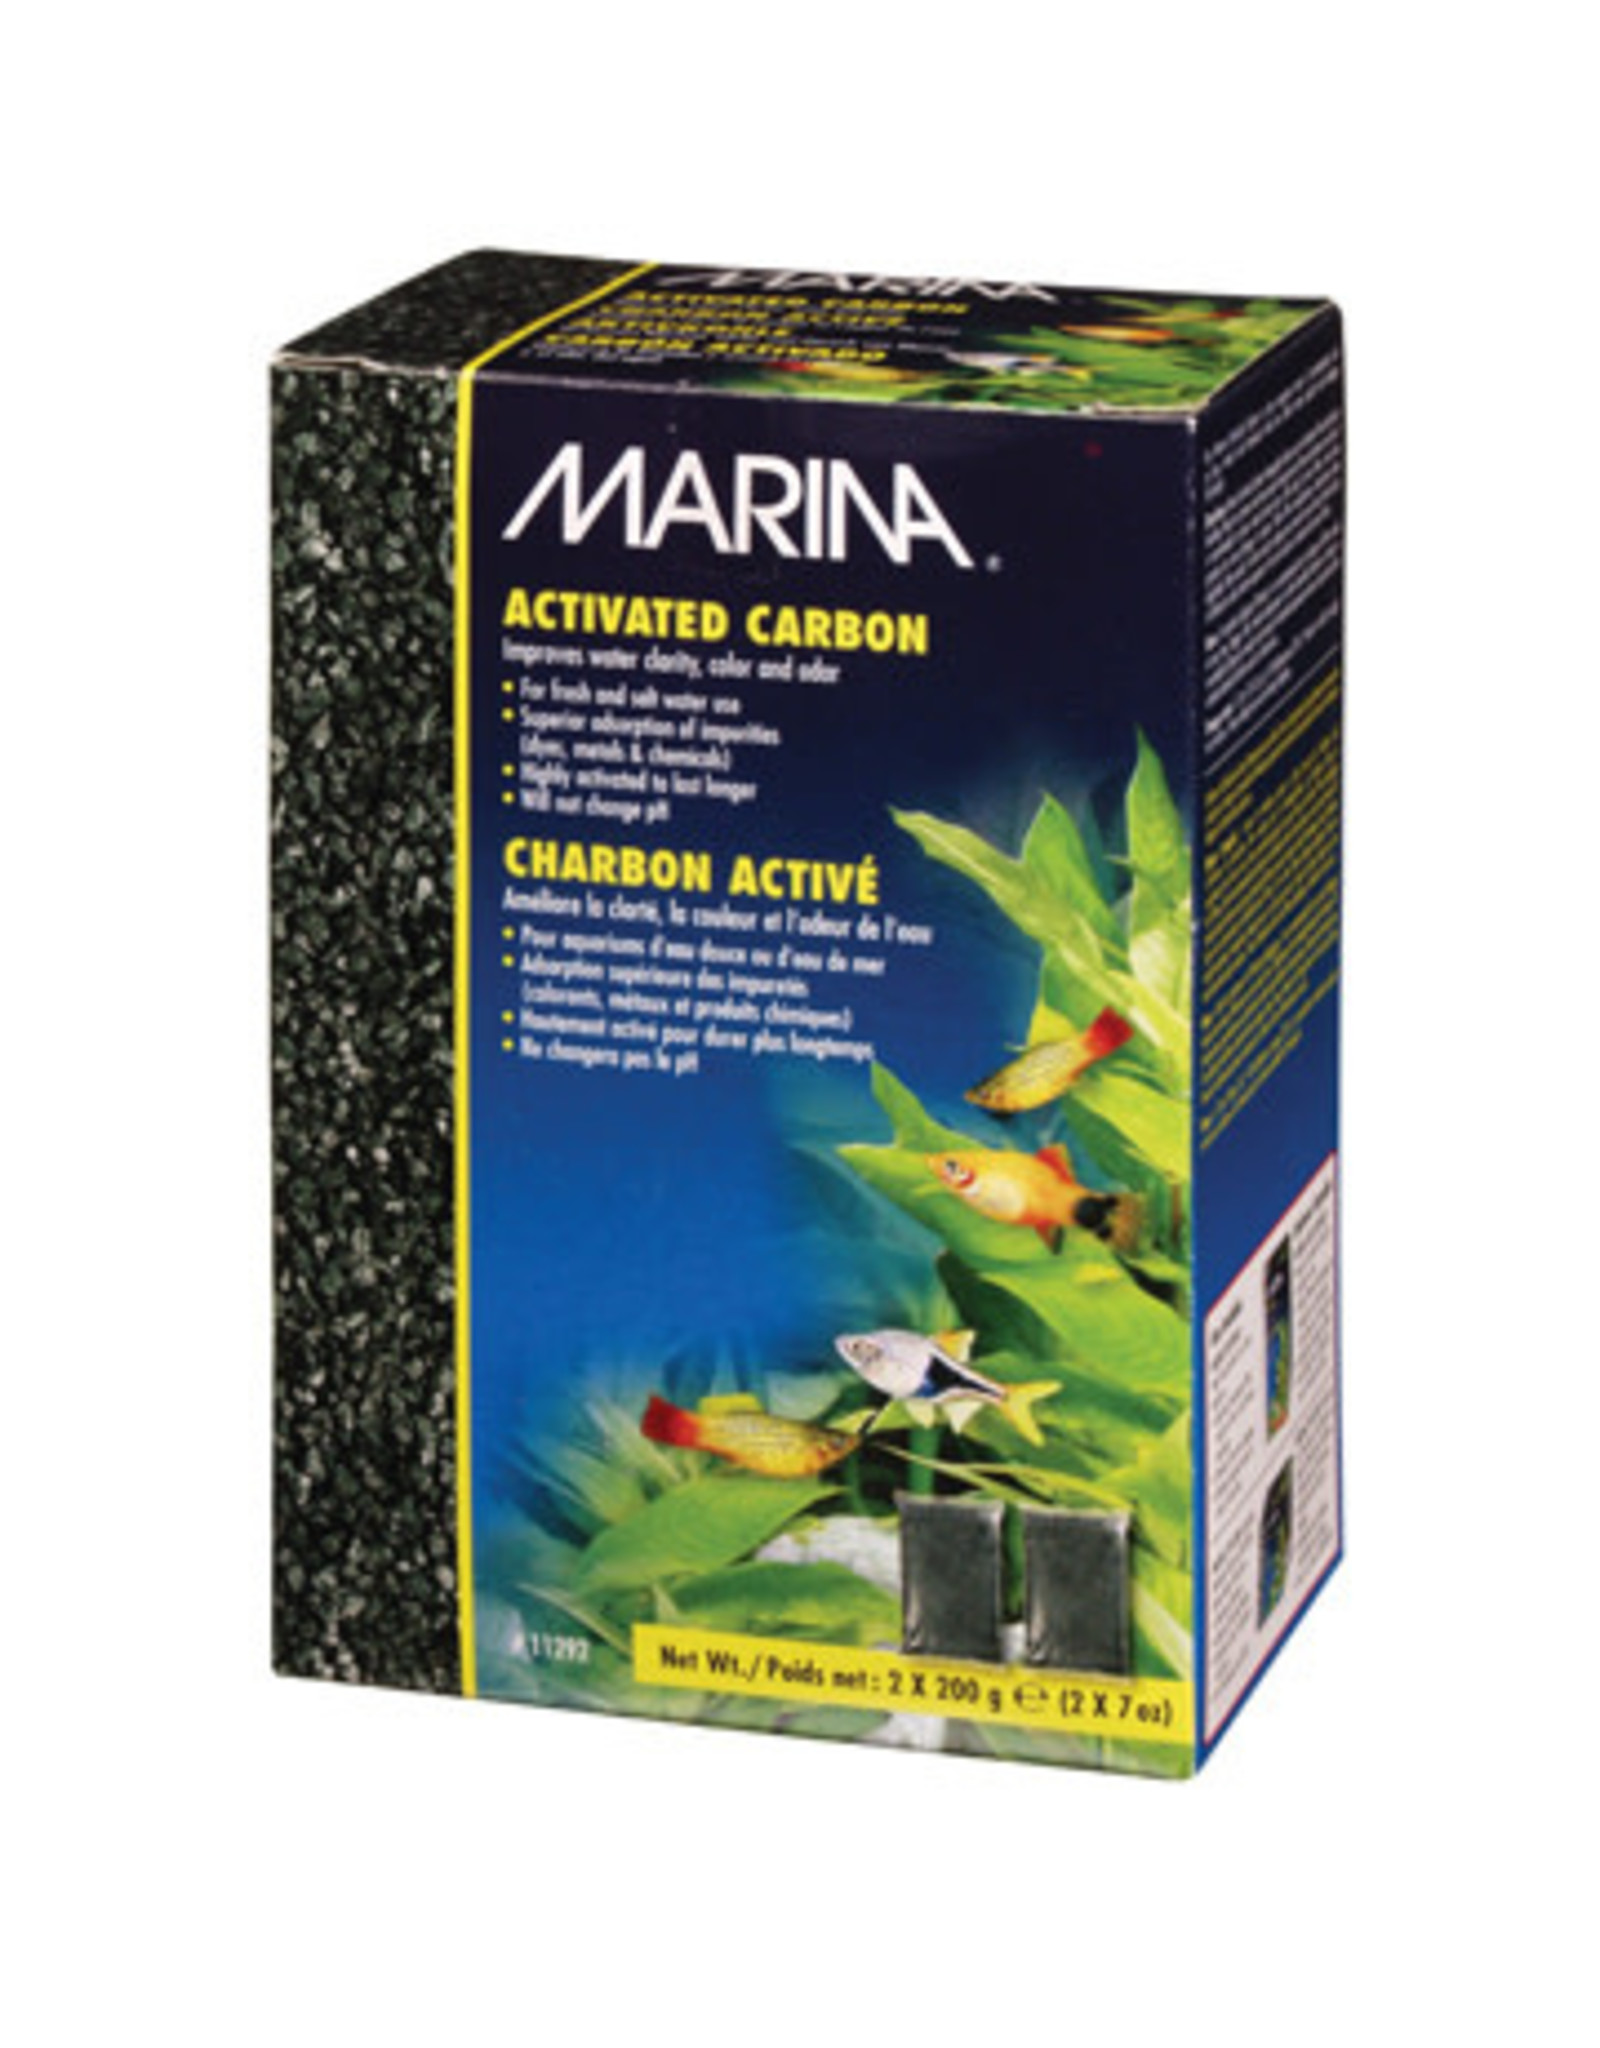 Marina Marina Activated Carbon - 400 g (14 oz)